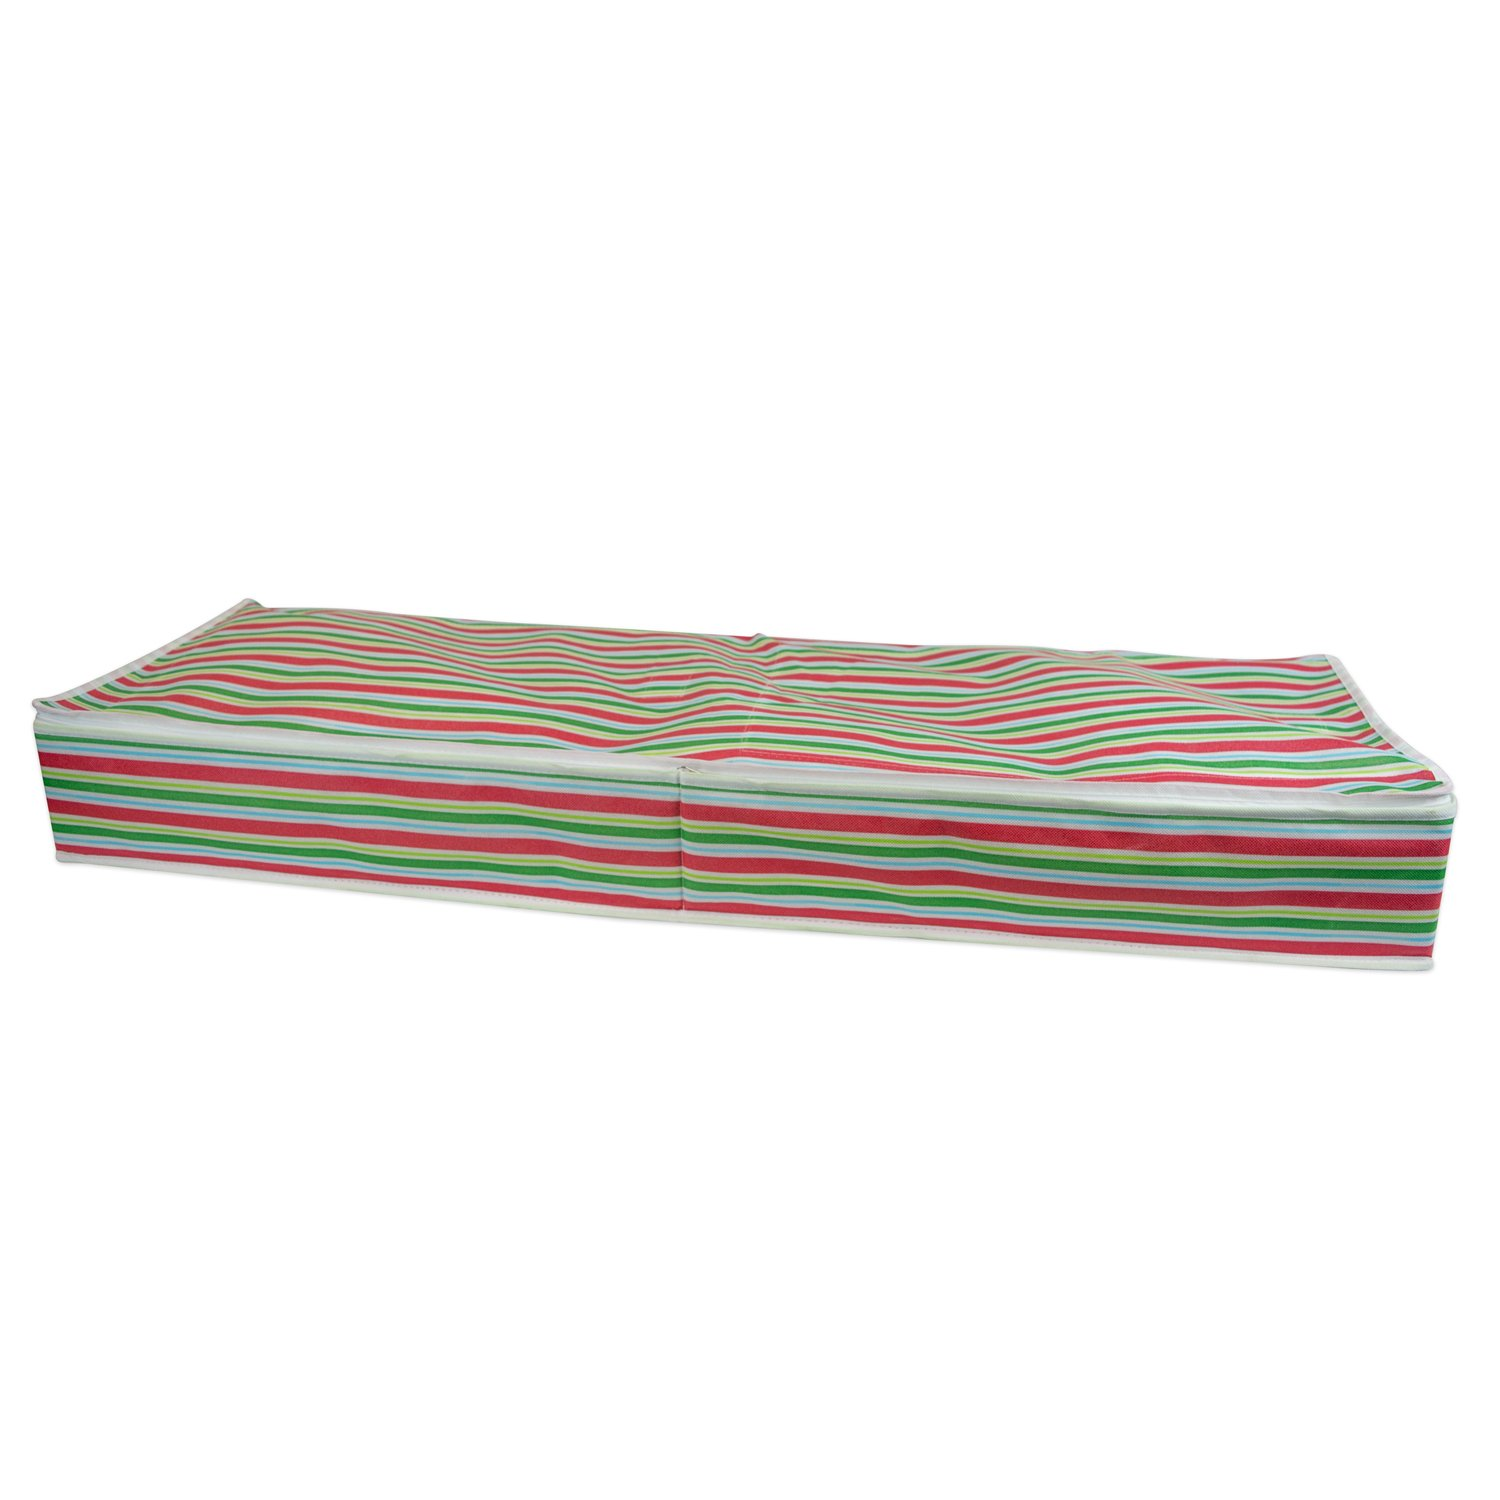 DII Holiday Storage Container for Gift Wrap, Ribbons, Bows (Stores up to 8 Rolls of Wrapping Paper) - Holiday Stripe